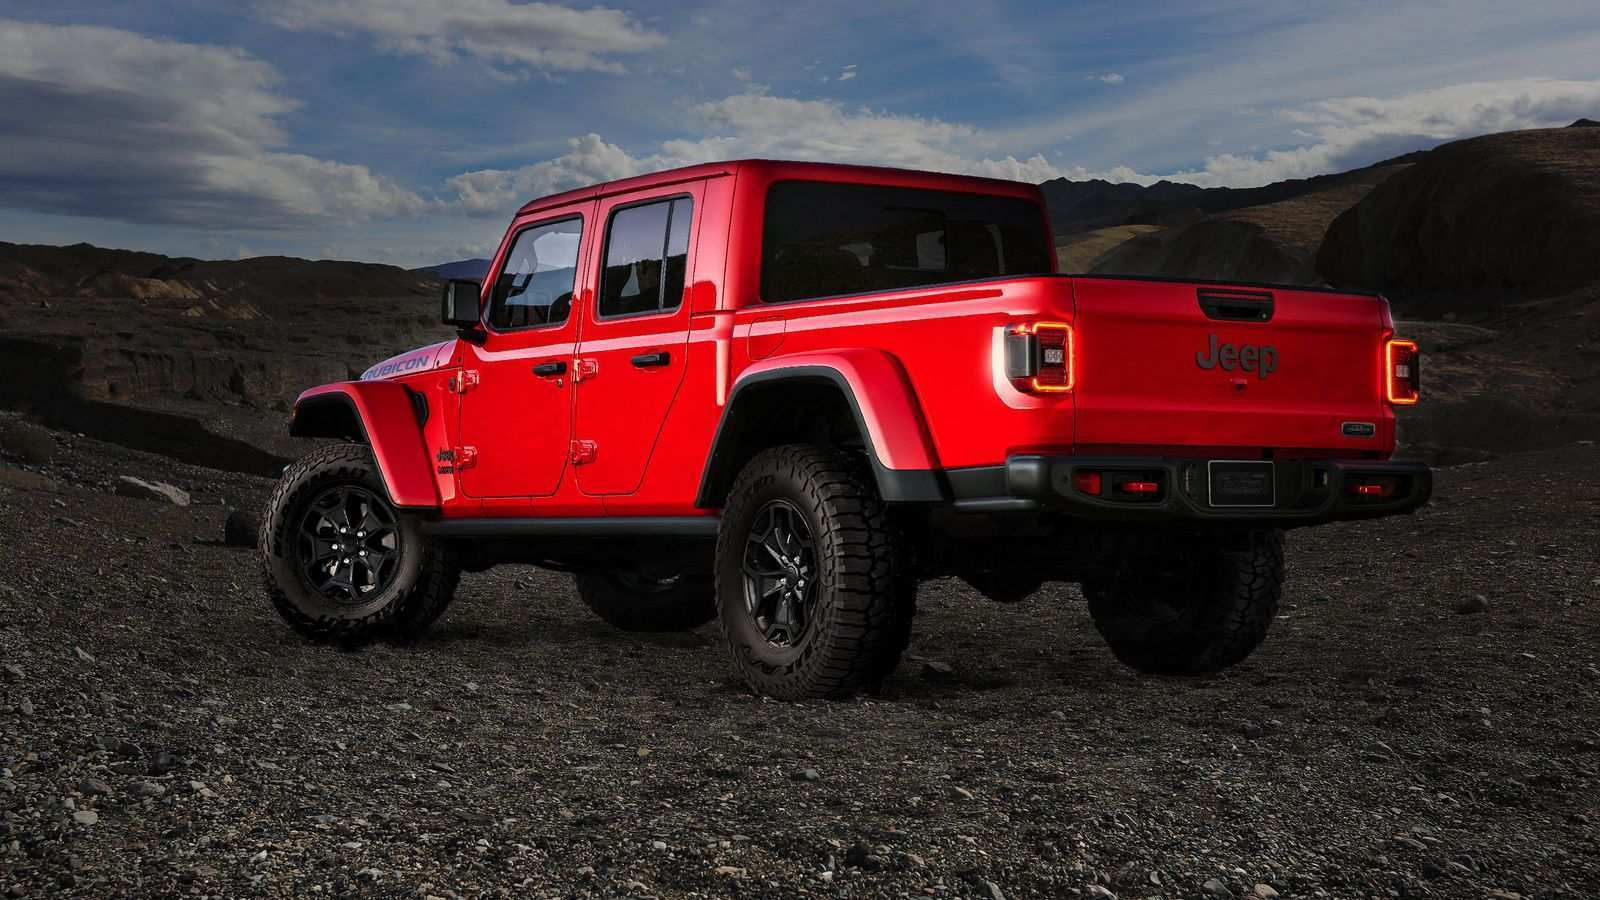 91 All New When Can I Order A 2020 Jeep Gladiator Picture